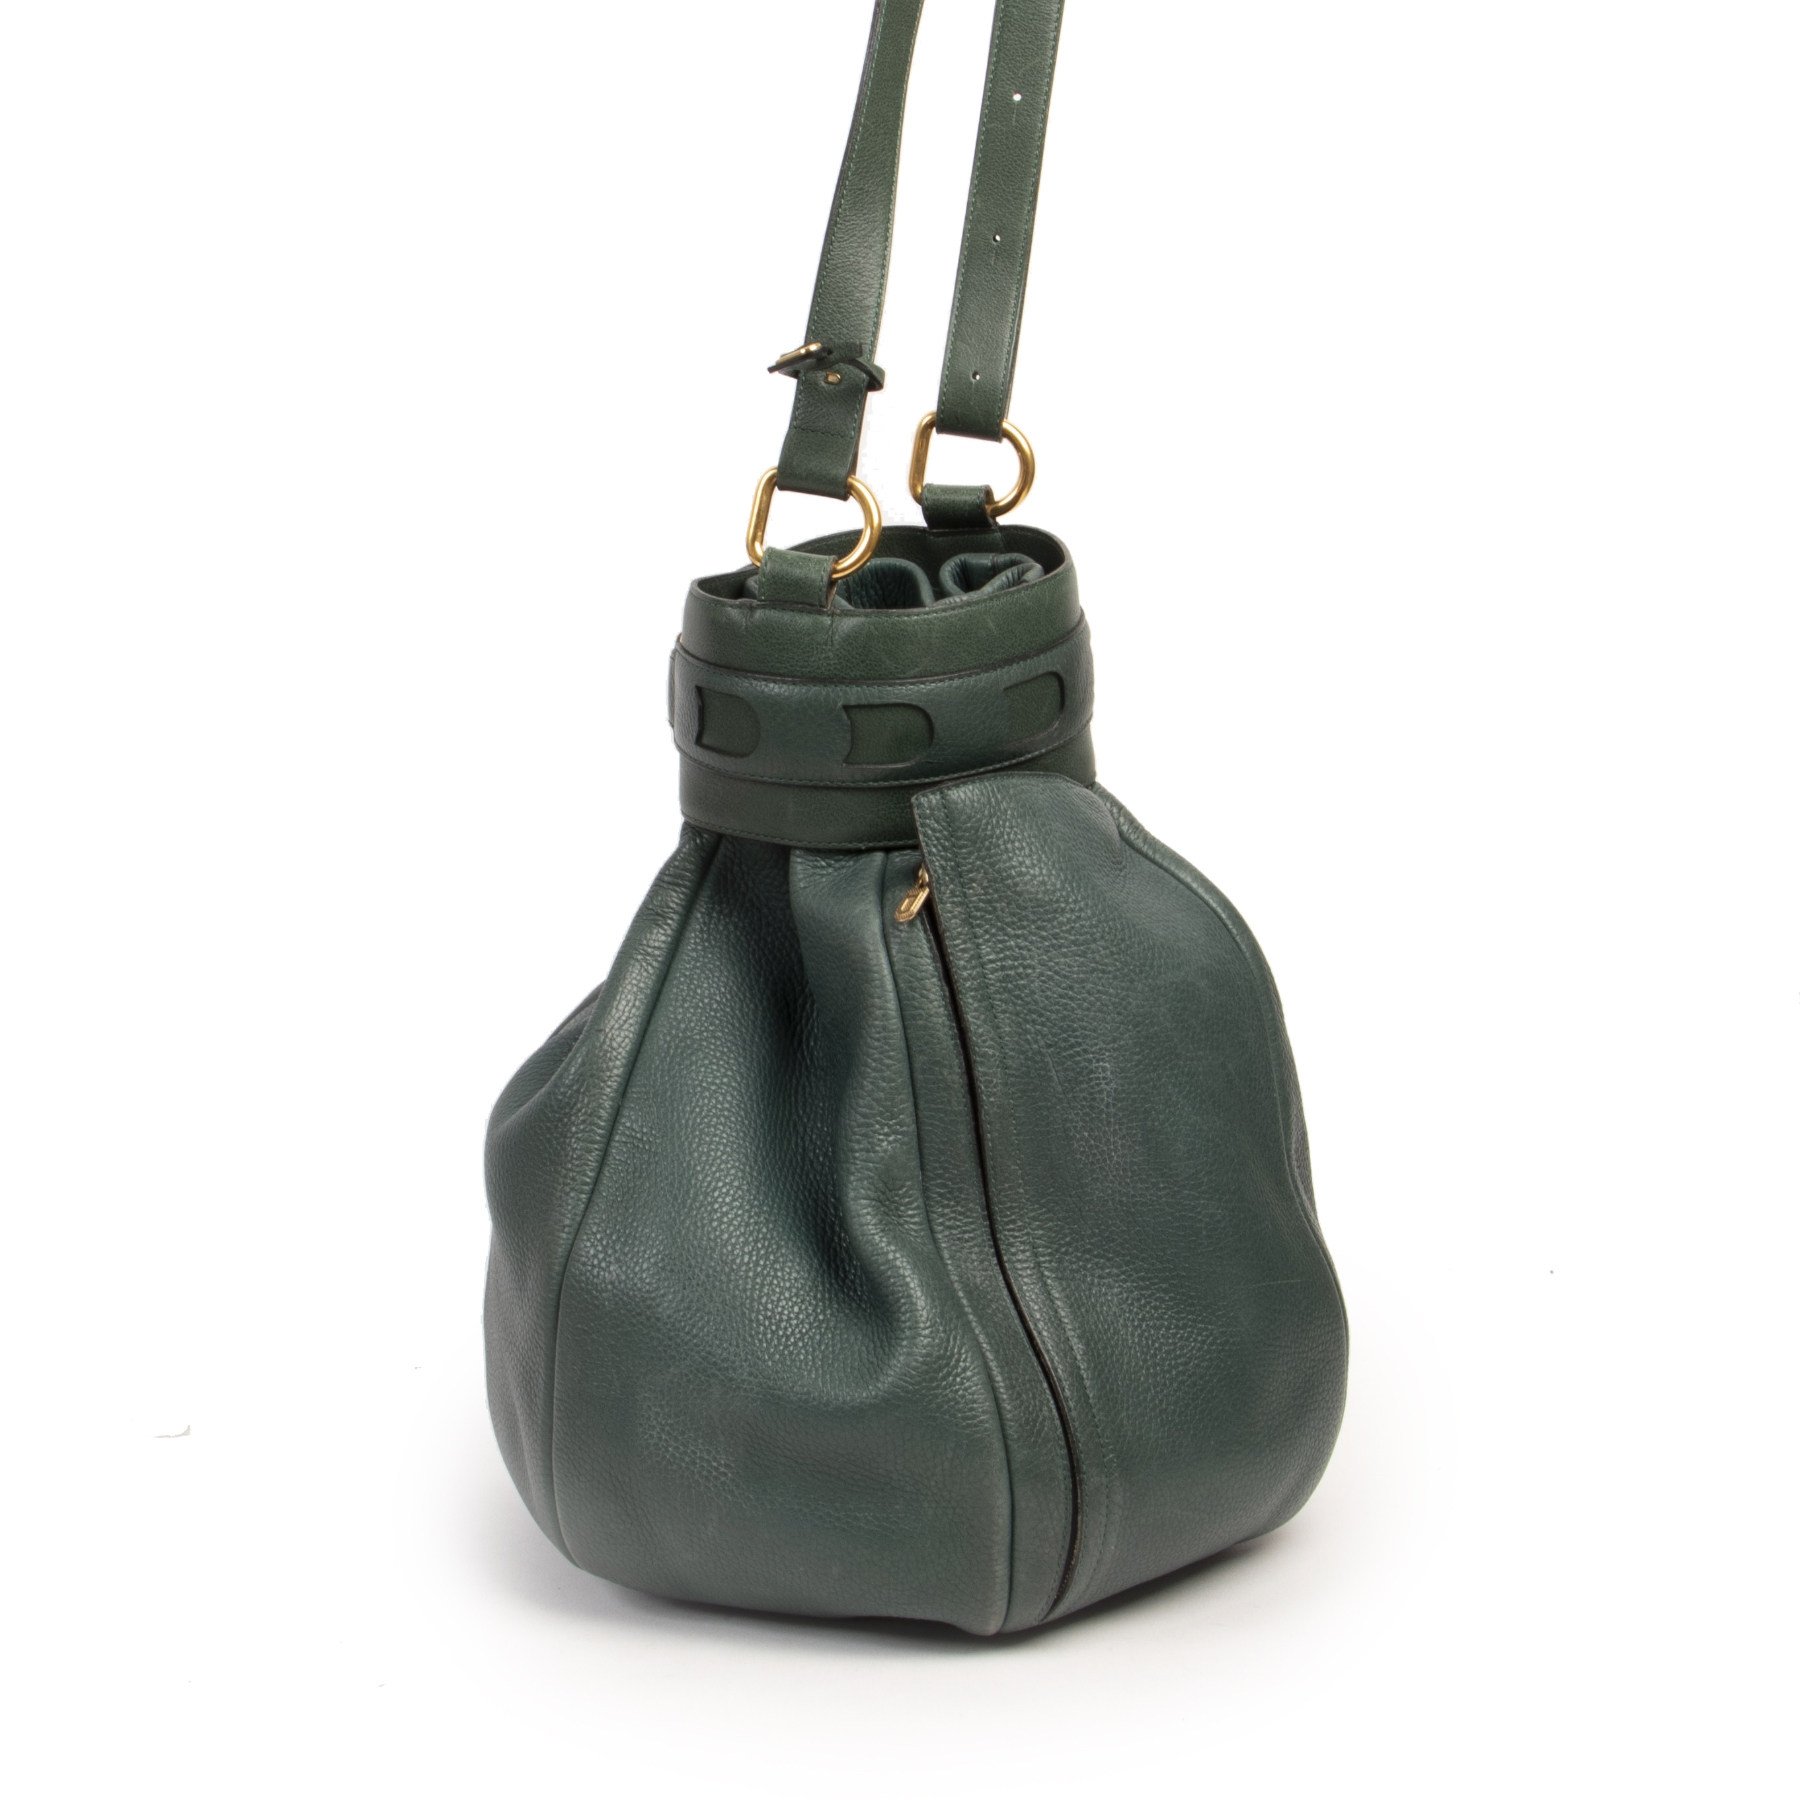 Authentic secondhand Delvaux Green Leather Bucket Bag designer bags fashion luxury vintage webshop safe secure online shopping